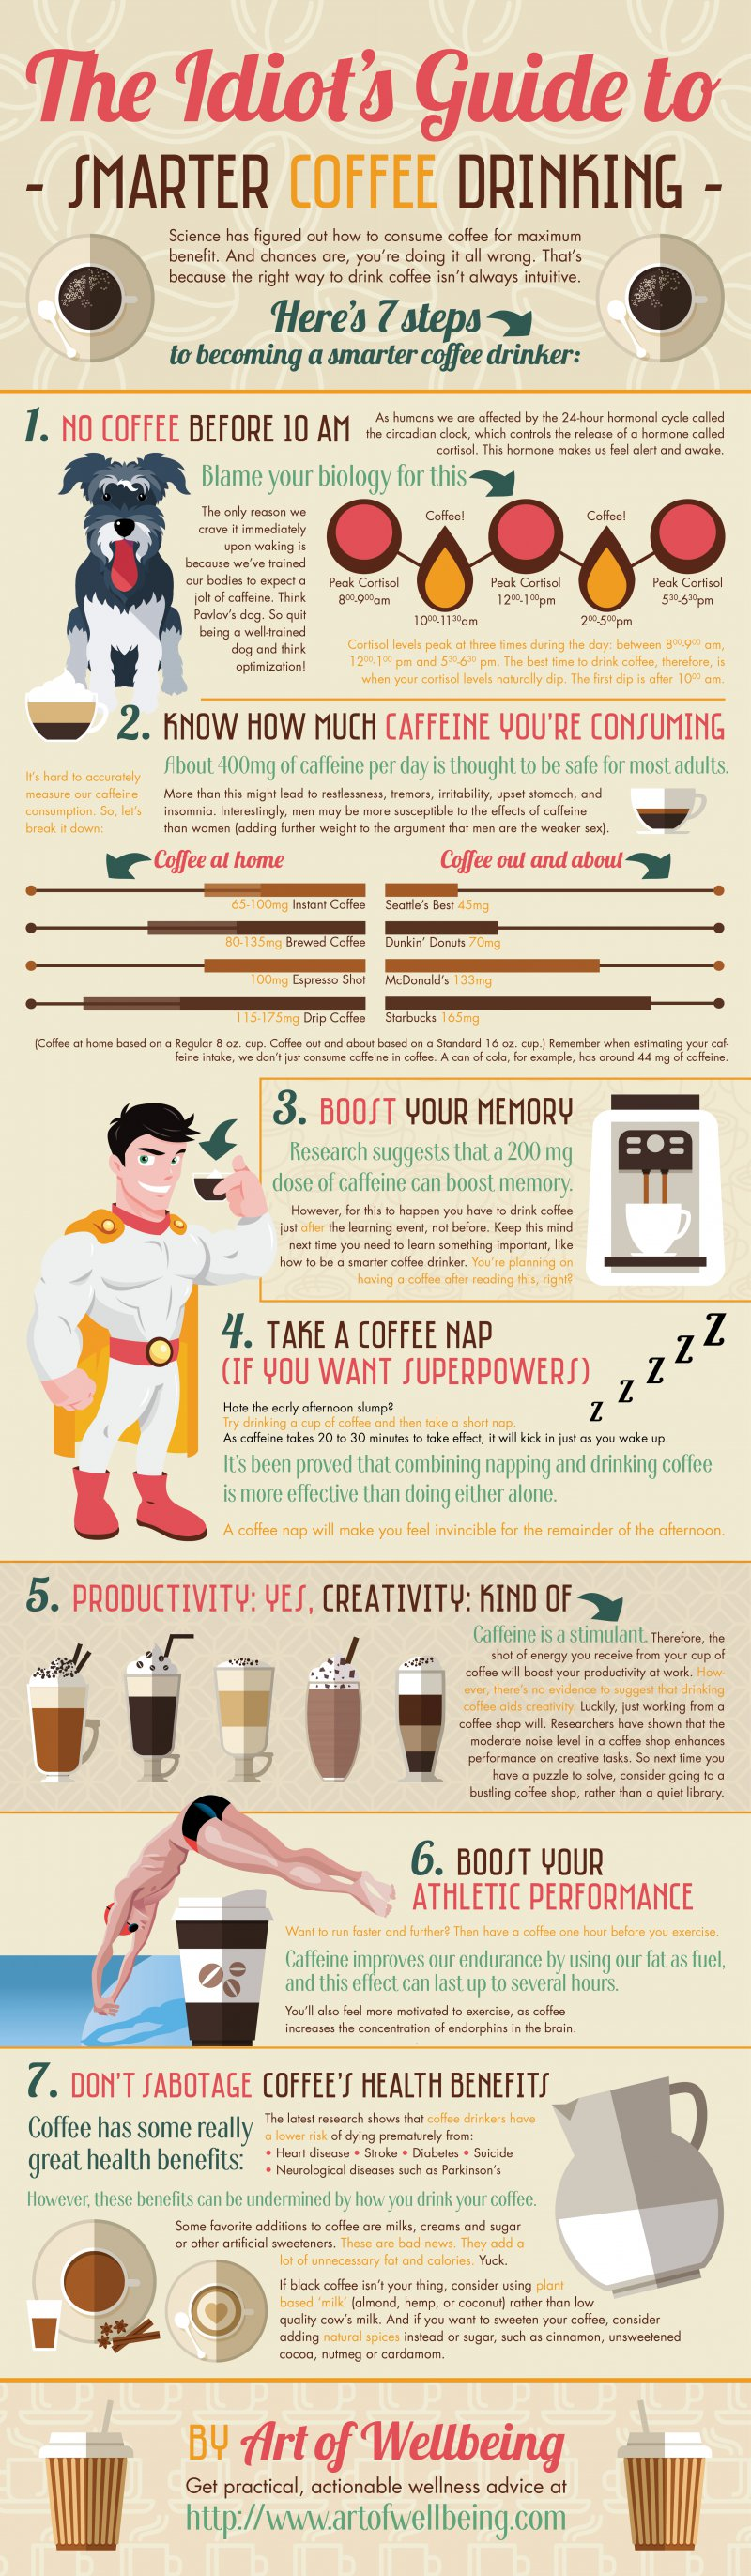 Idiot's Guide To Smarter Coffee Drinking